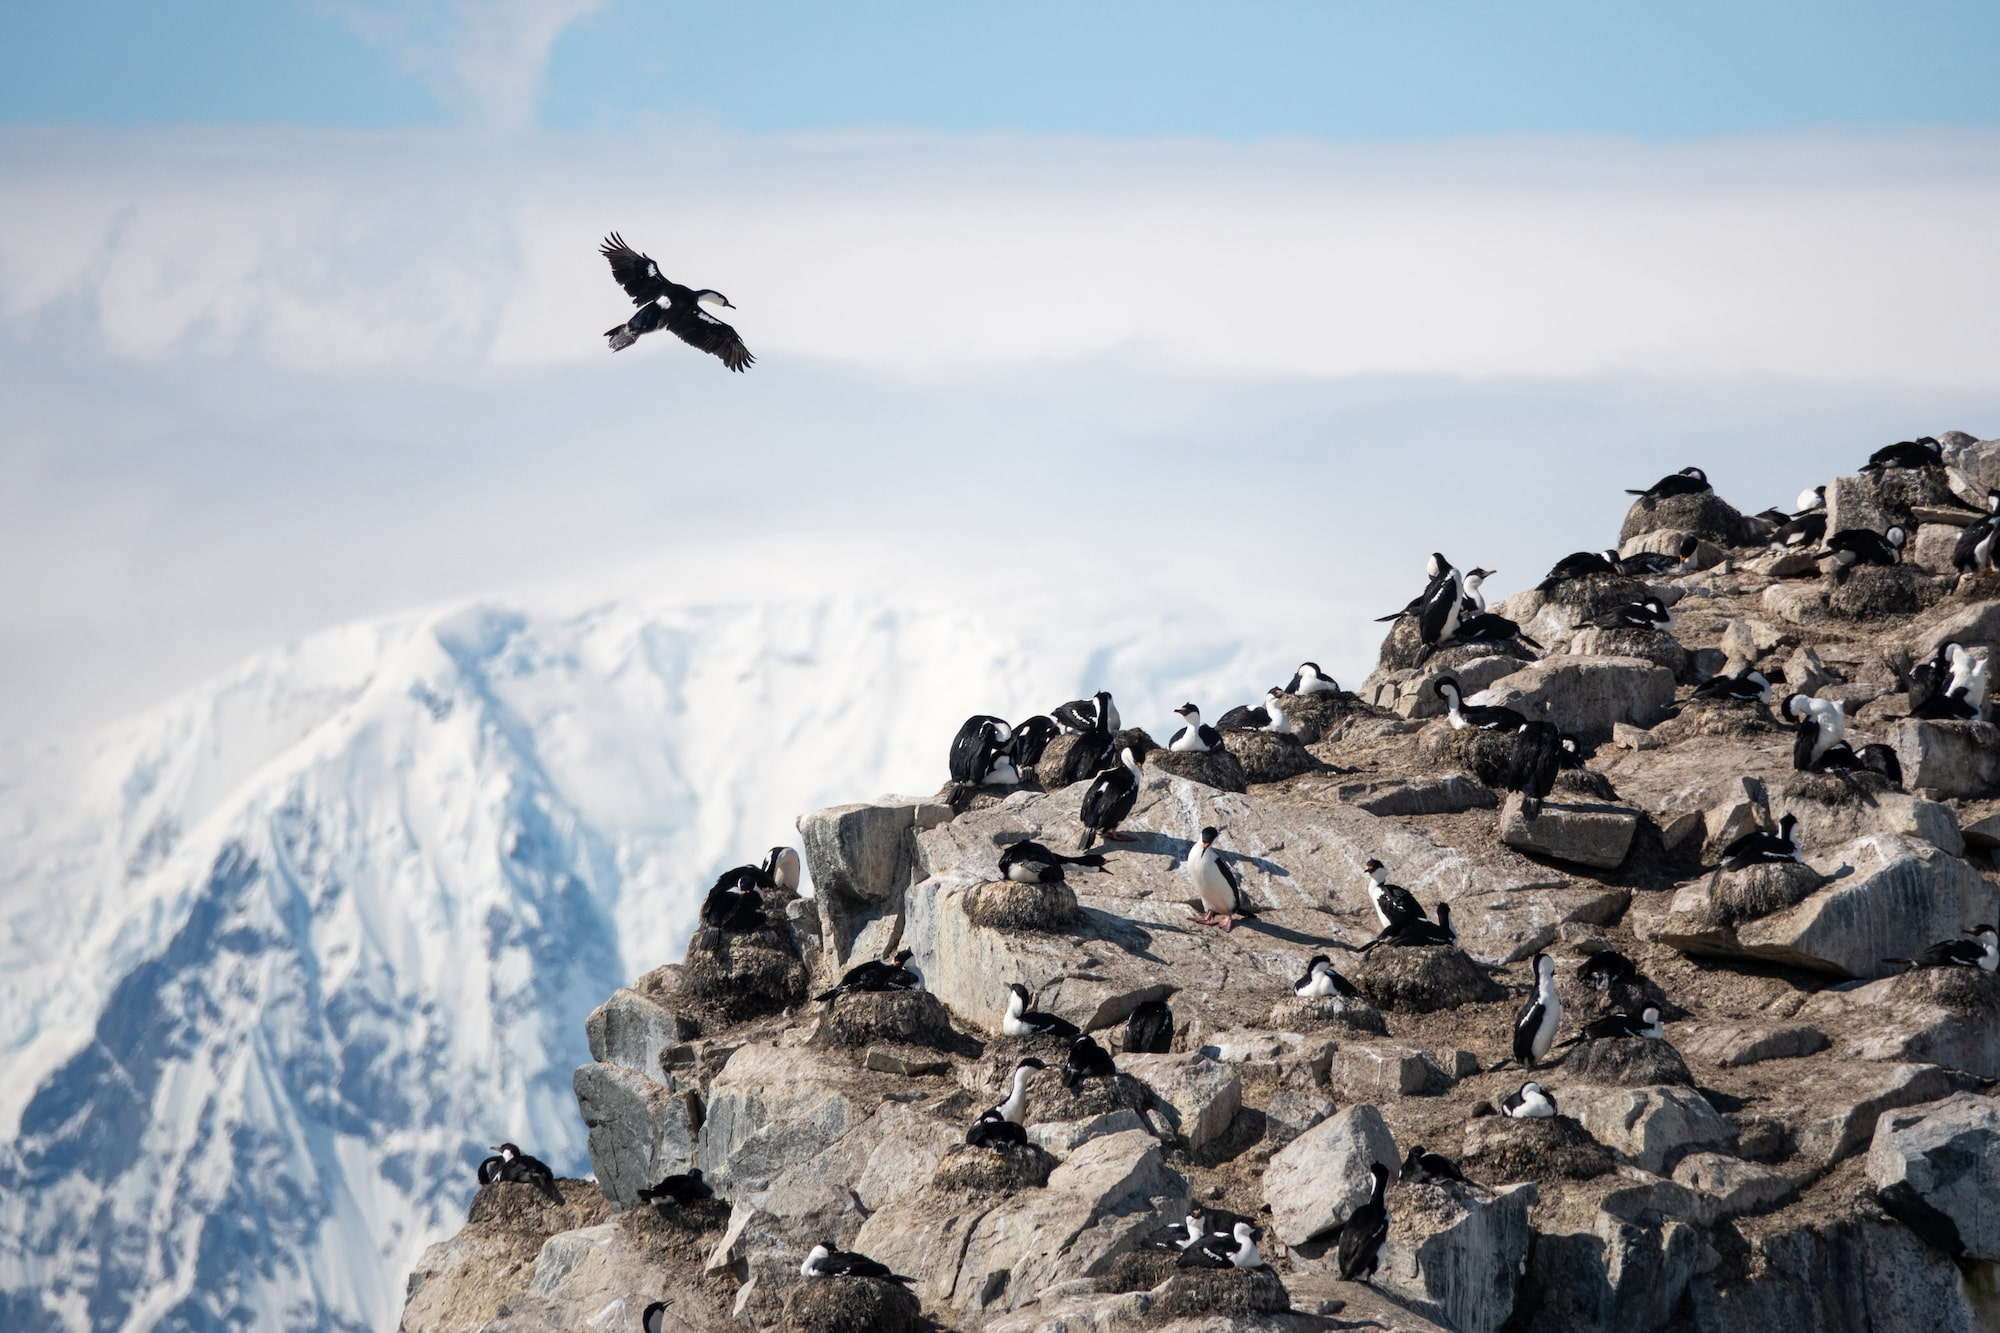 will burrard lucas sony alpha rx10IV a bird soars above a mountain ledge with snow covered caps behind